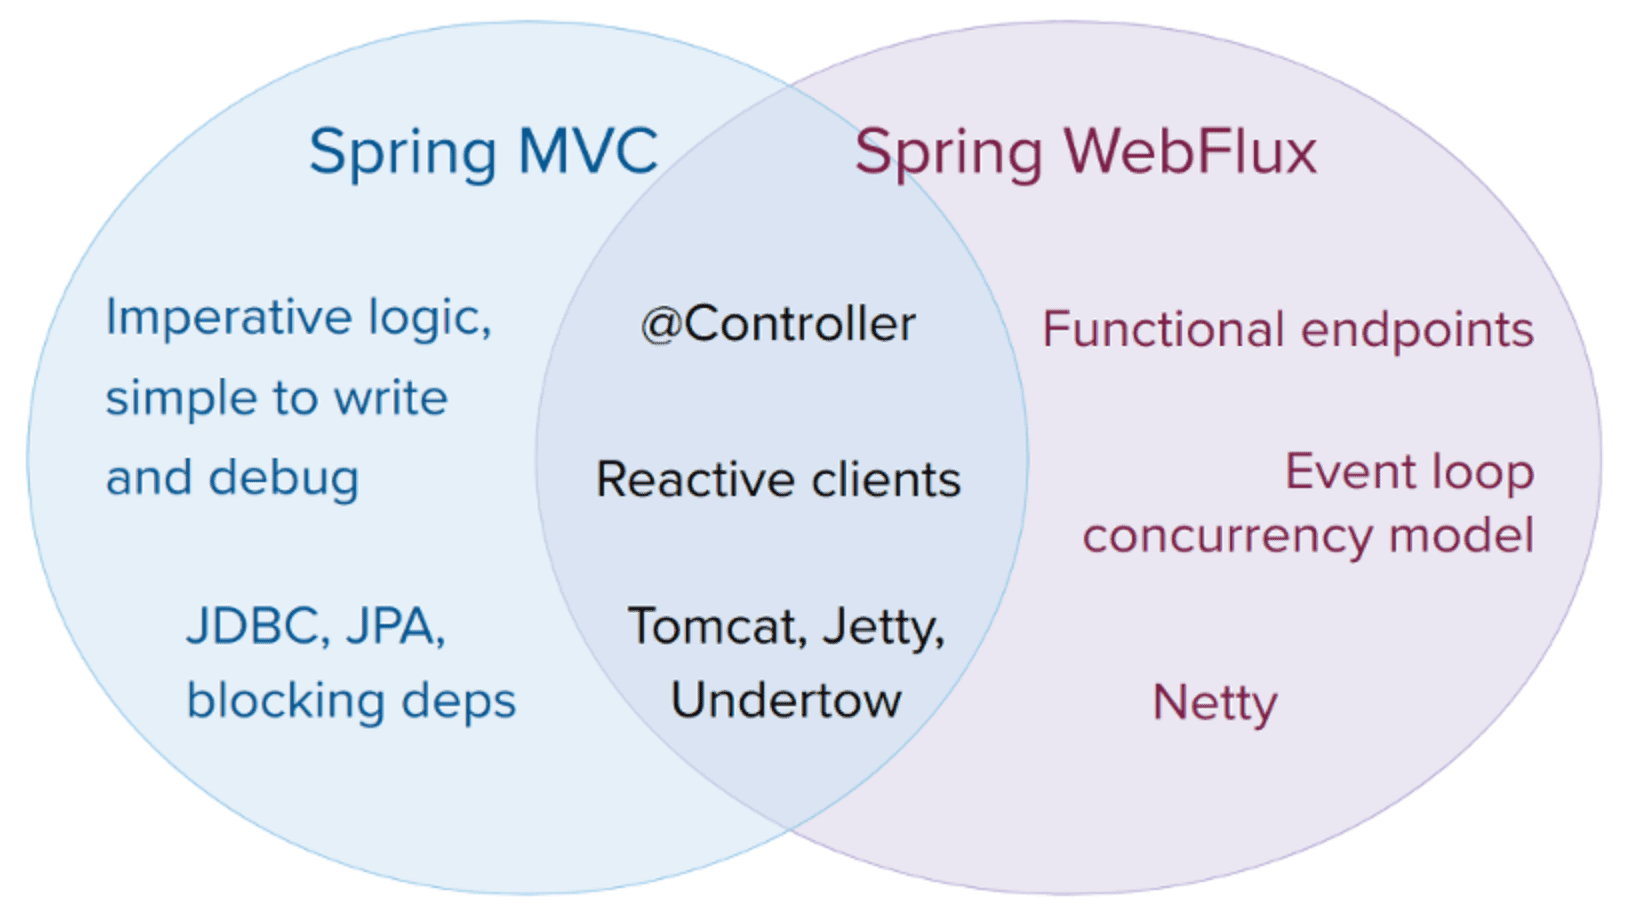 the diagram for spring mvc and spring webflux